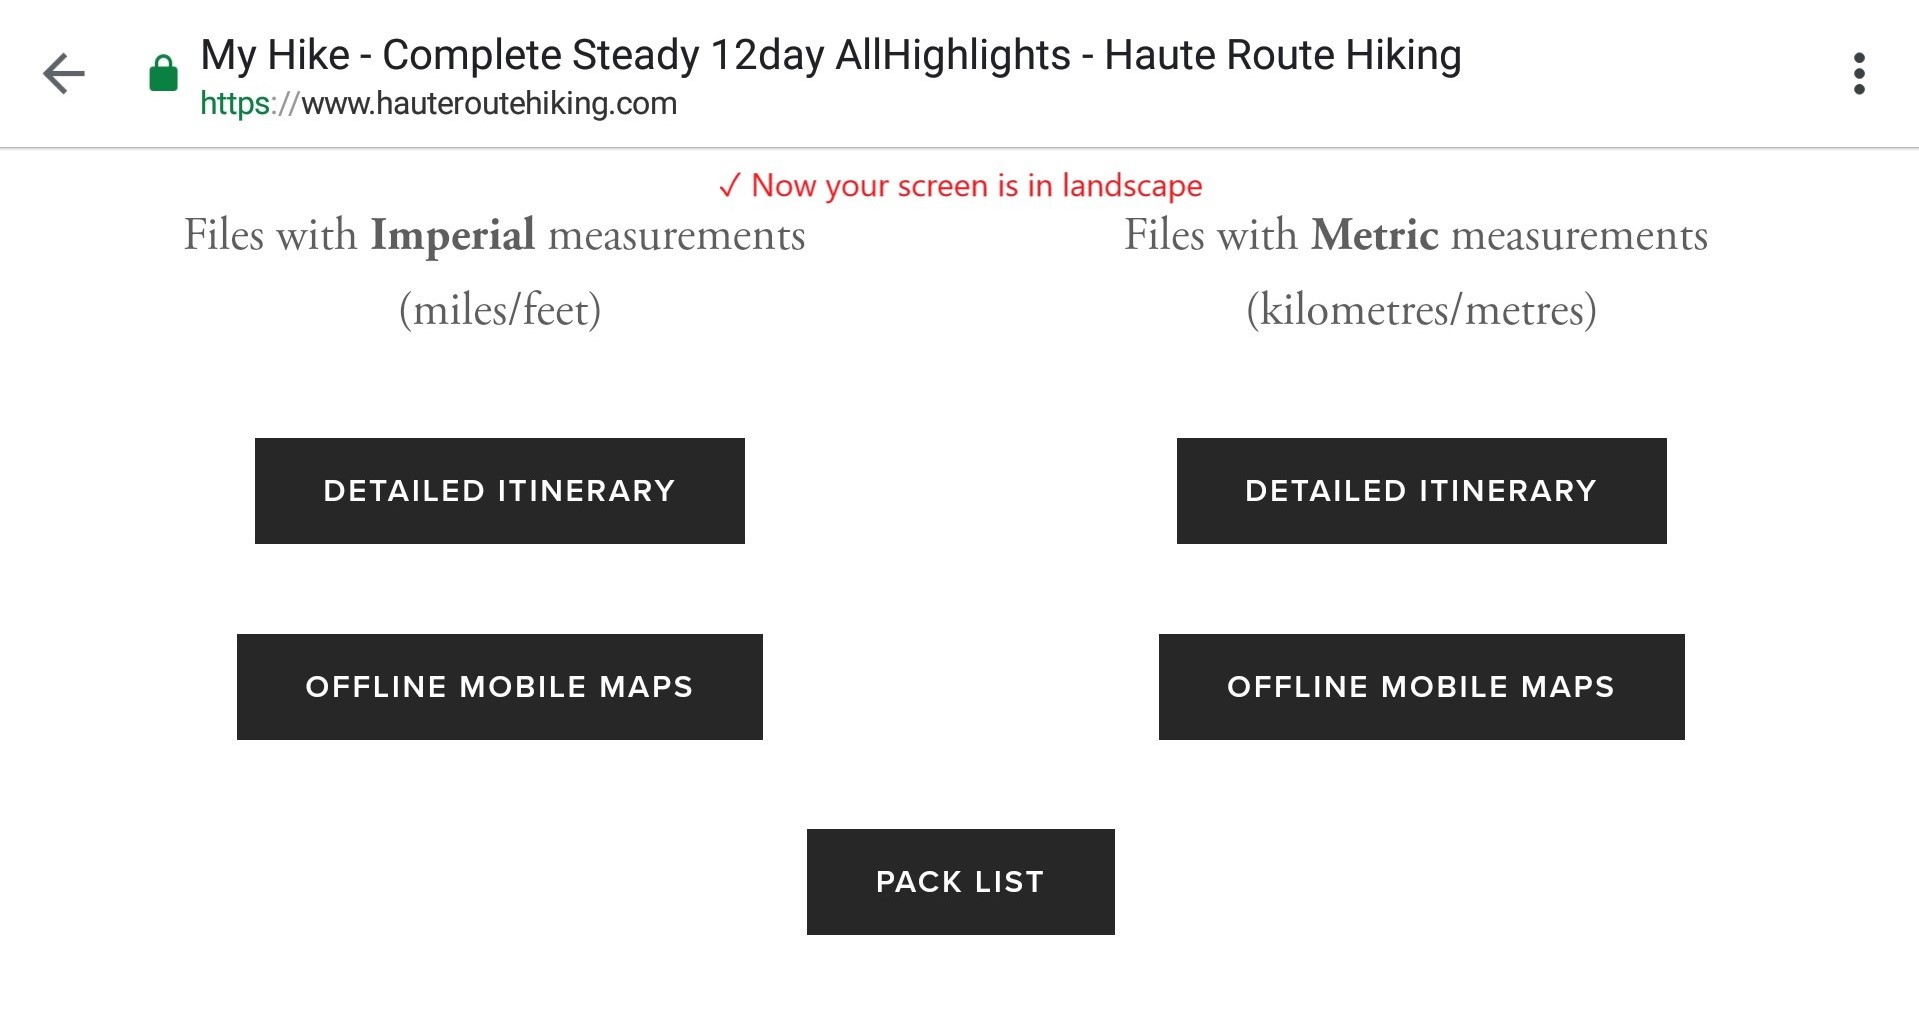 Image 4:  When you phone is positioned in landscape, you'll be able to see which offline mobile map is for Imperial measurements and Metric measurements.